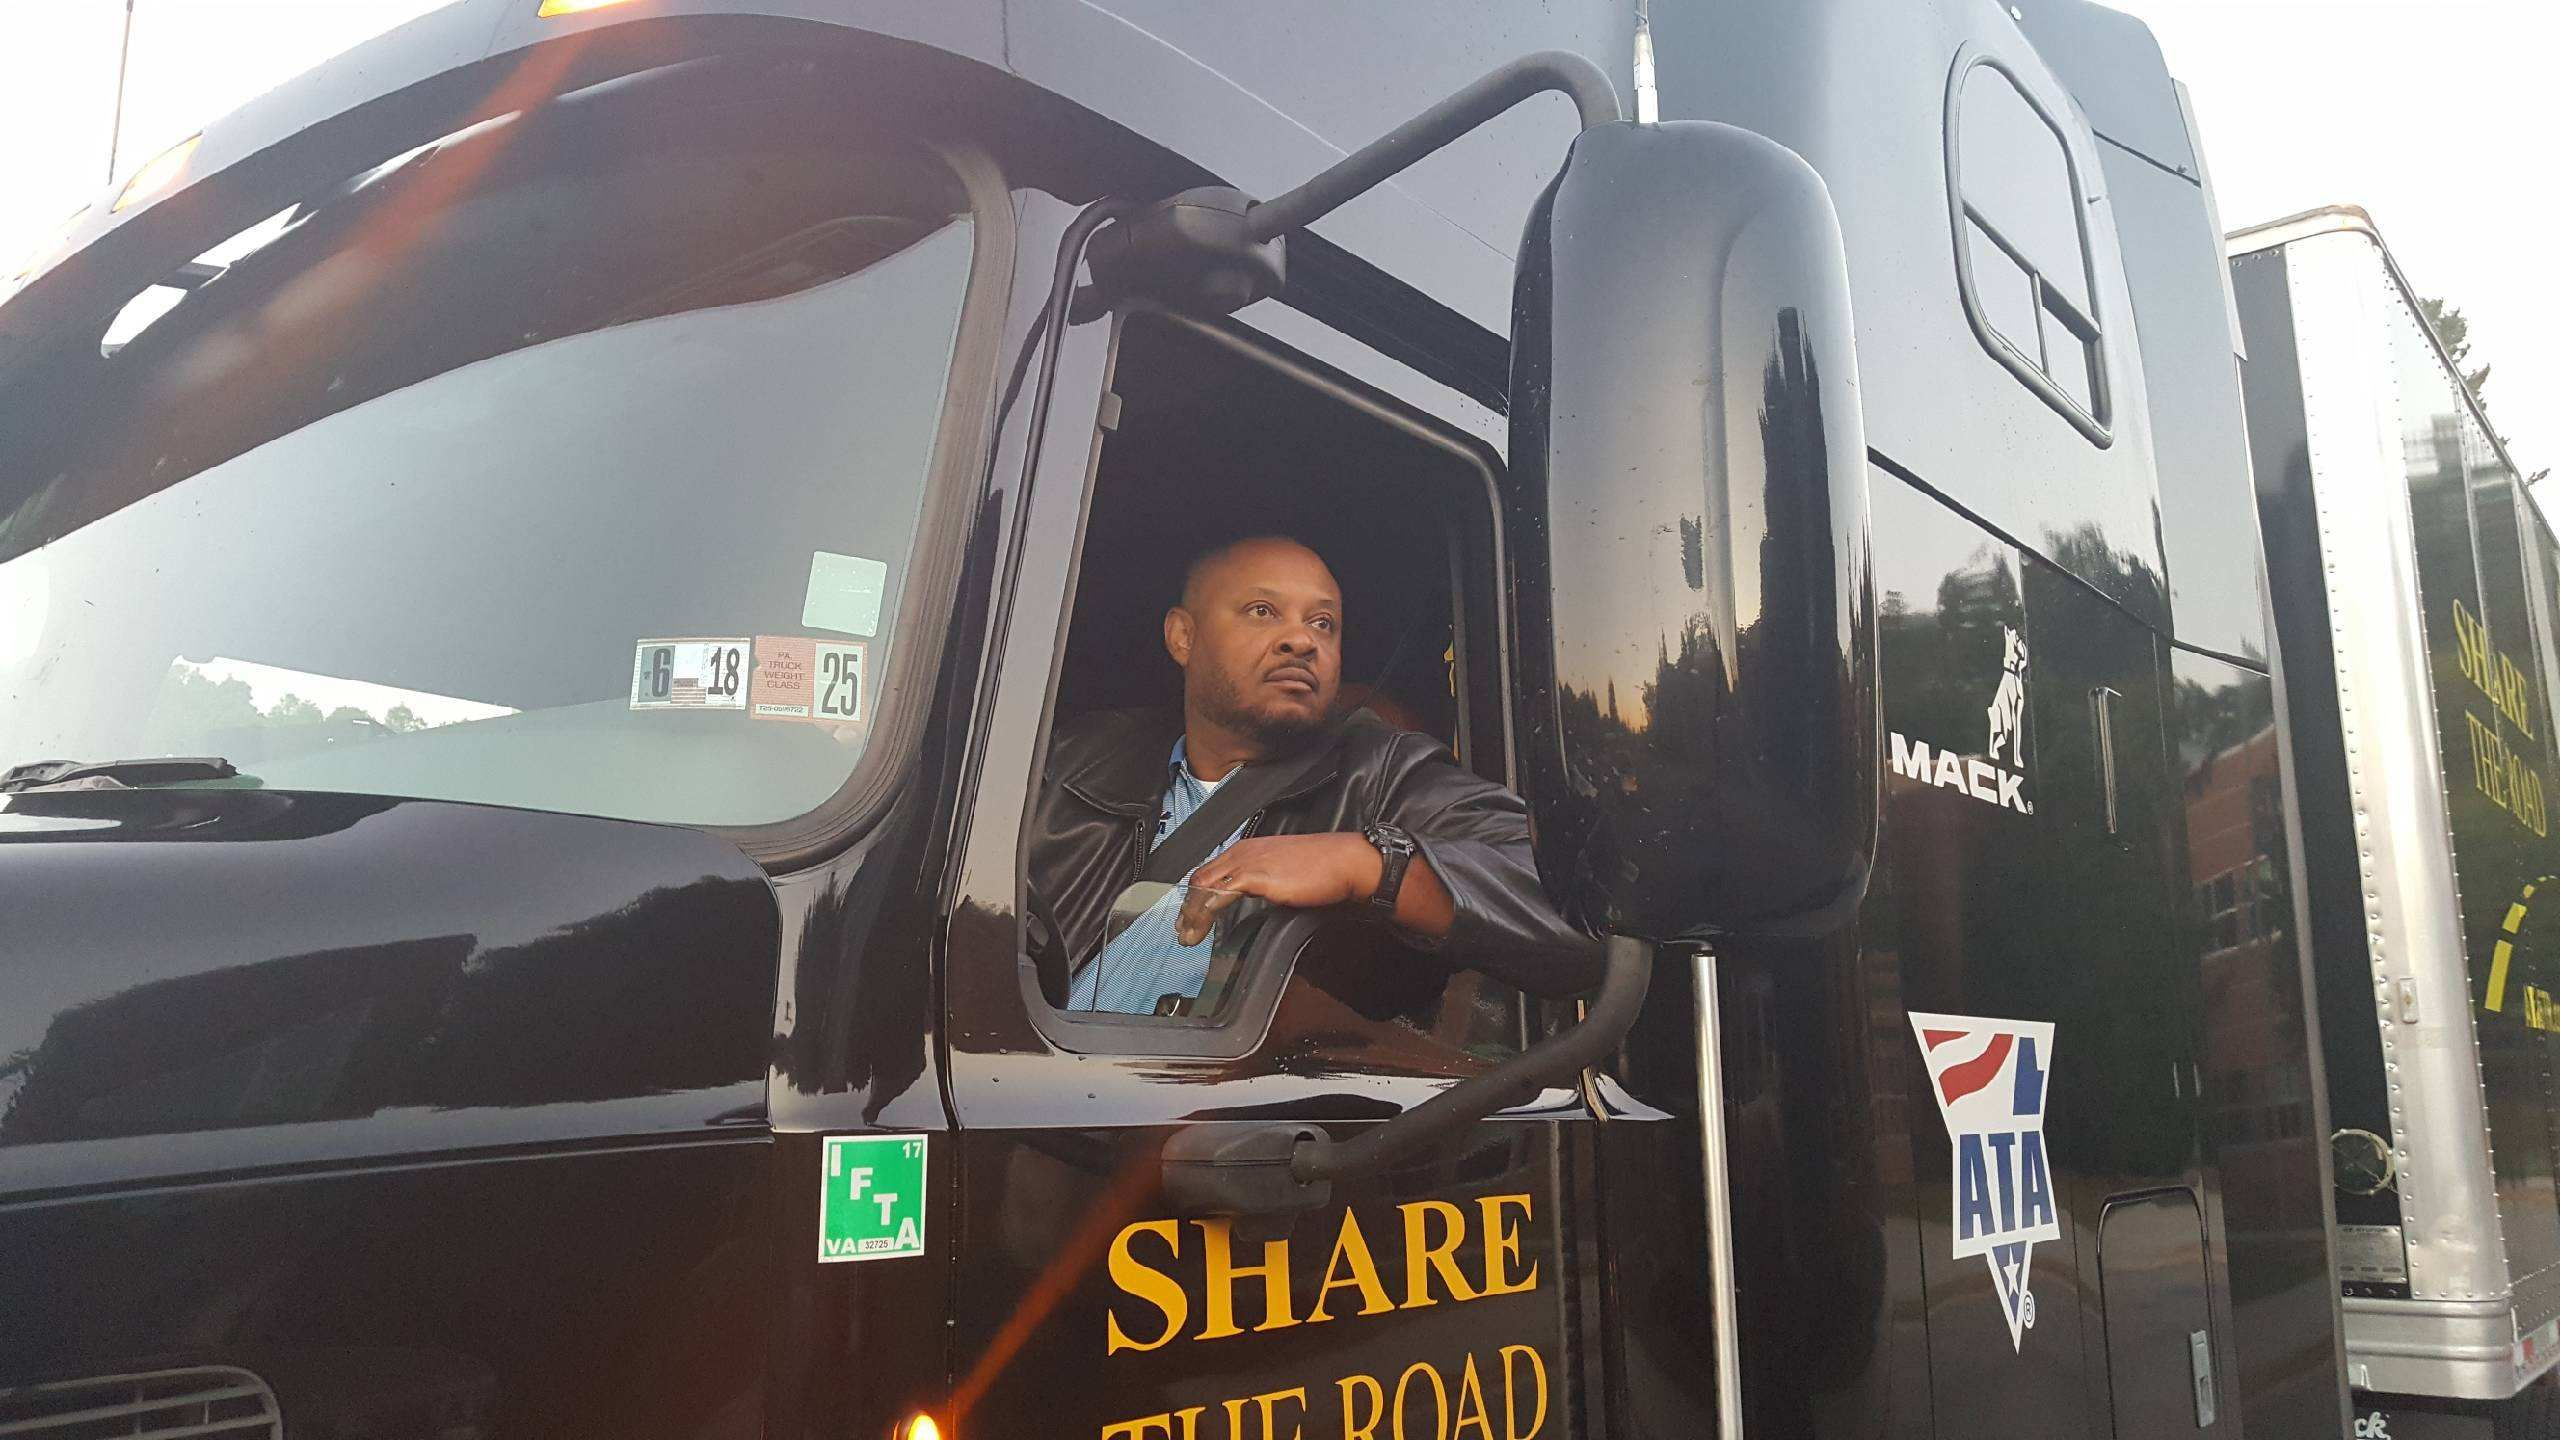 America's Road Team Captains Help Young Drivers Safely Share the Road